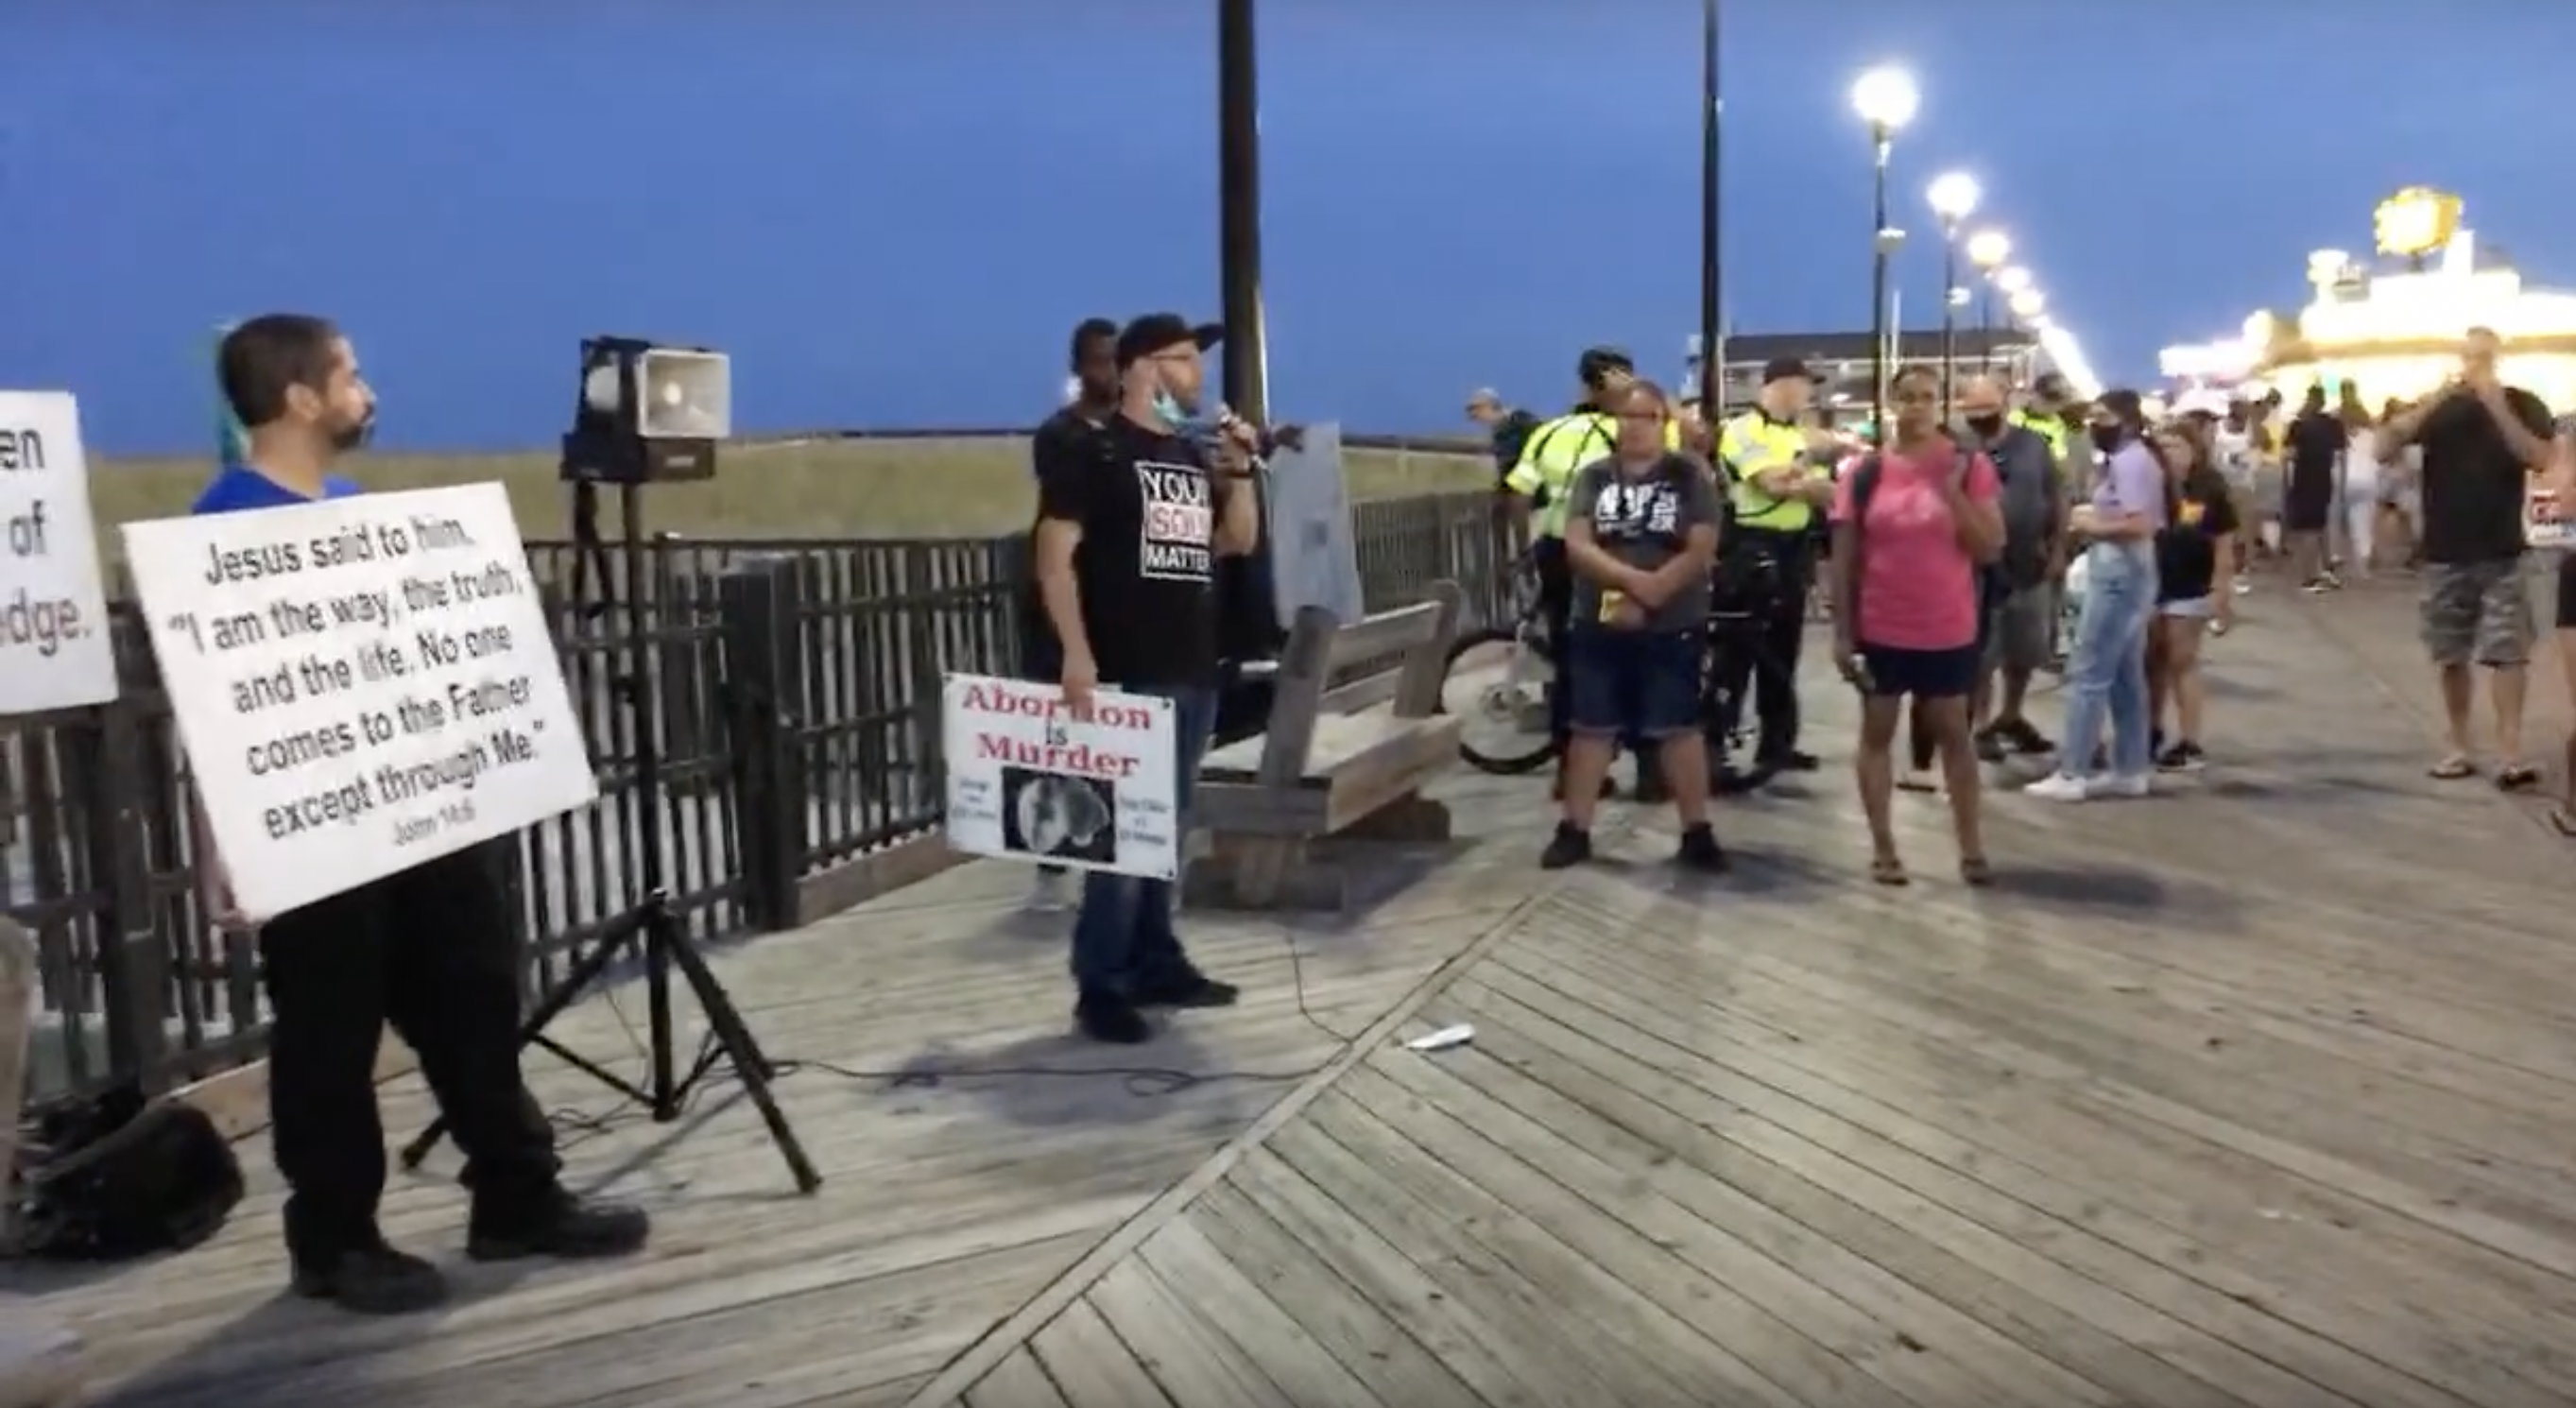 A group of religious activists demonstrate on the boardwalk in Seaside Heights, N.J. (Credit: Time to Change/YouTube)